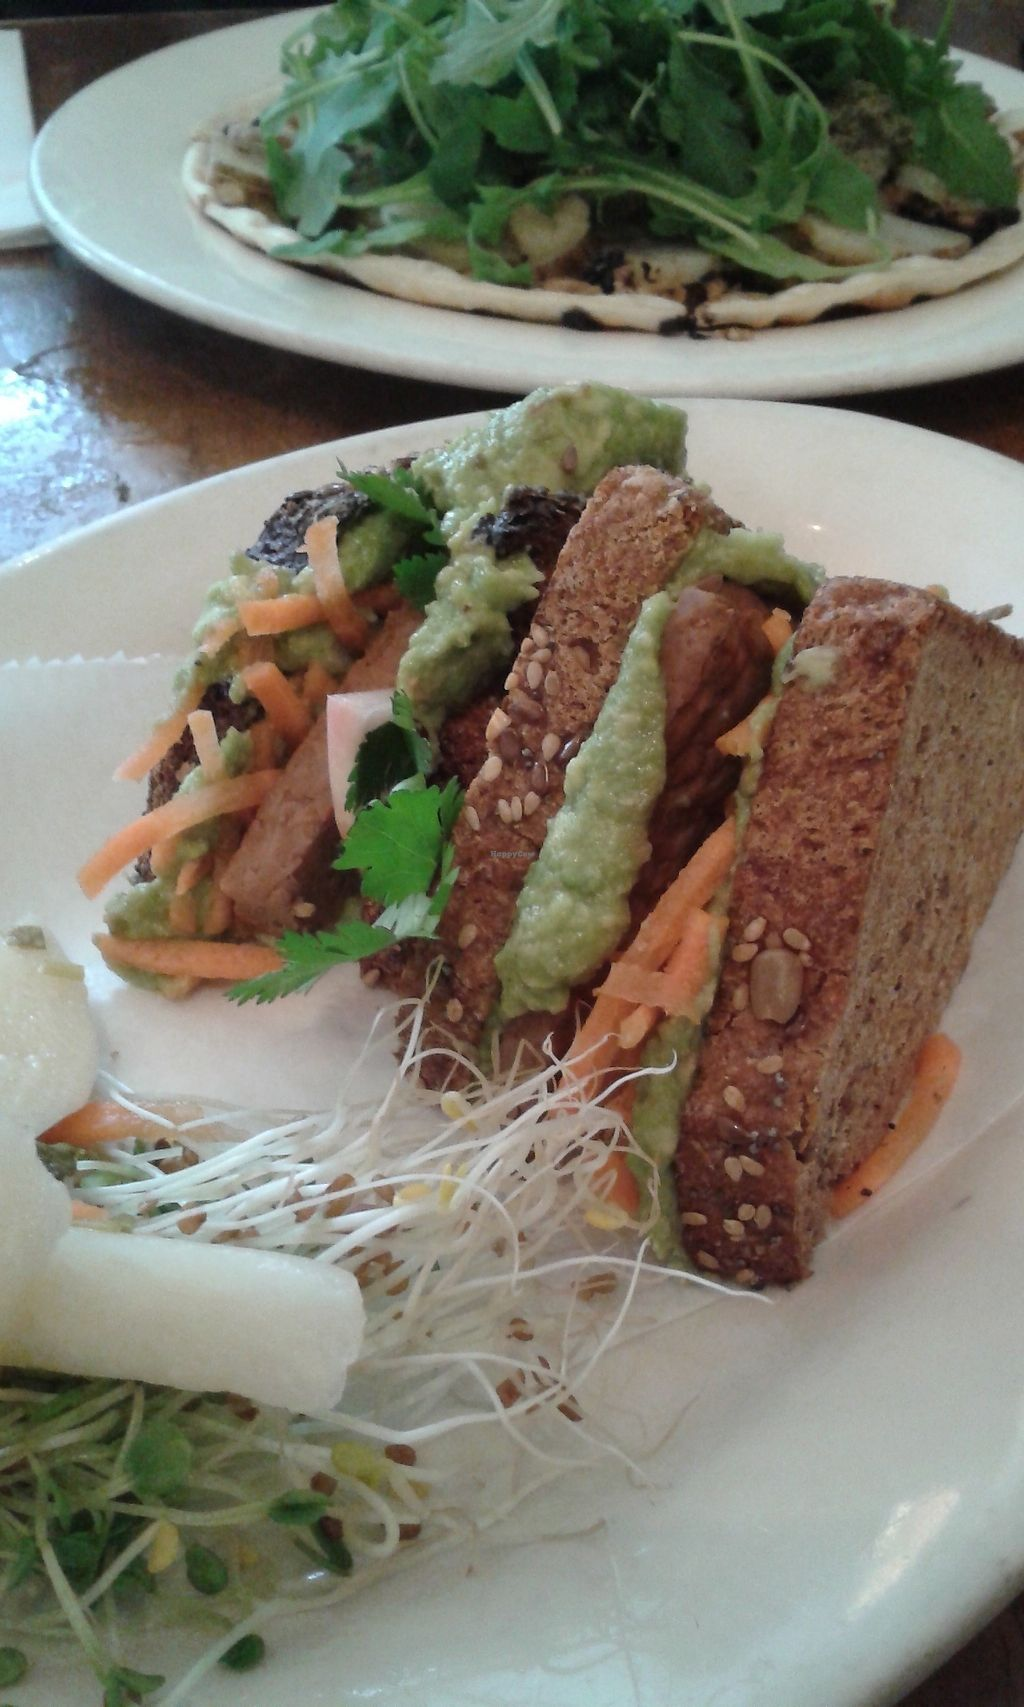 """Photo of Peacefood Cafe - Uptown  by <a href=""""/members/profile/Coralin"""">Coralin</a> <br/>Avocado and tempeh sandwich <br/> November 9, 2017  - <a href='/contact/abuse/image/17713/323582'>Report</a>"""